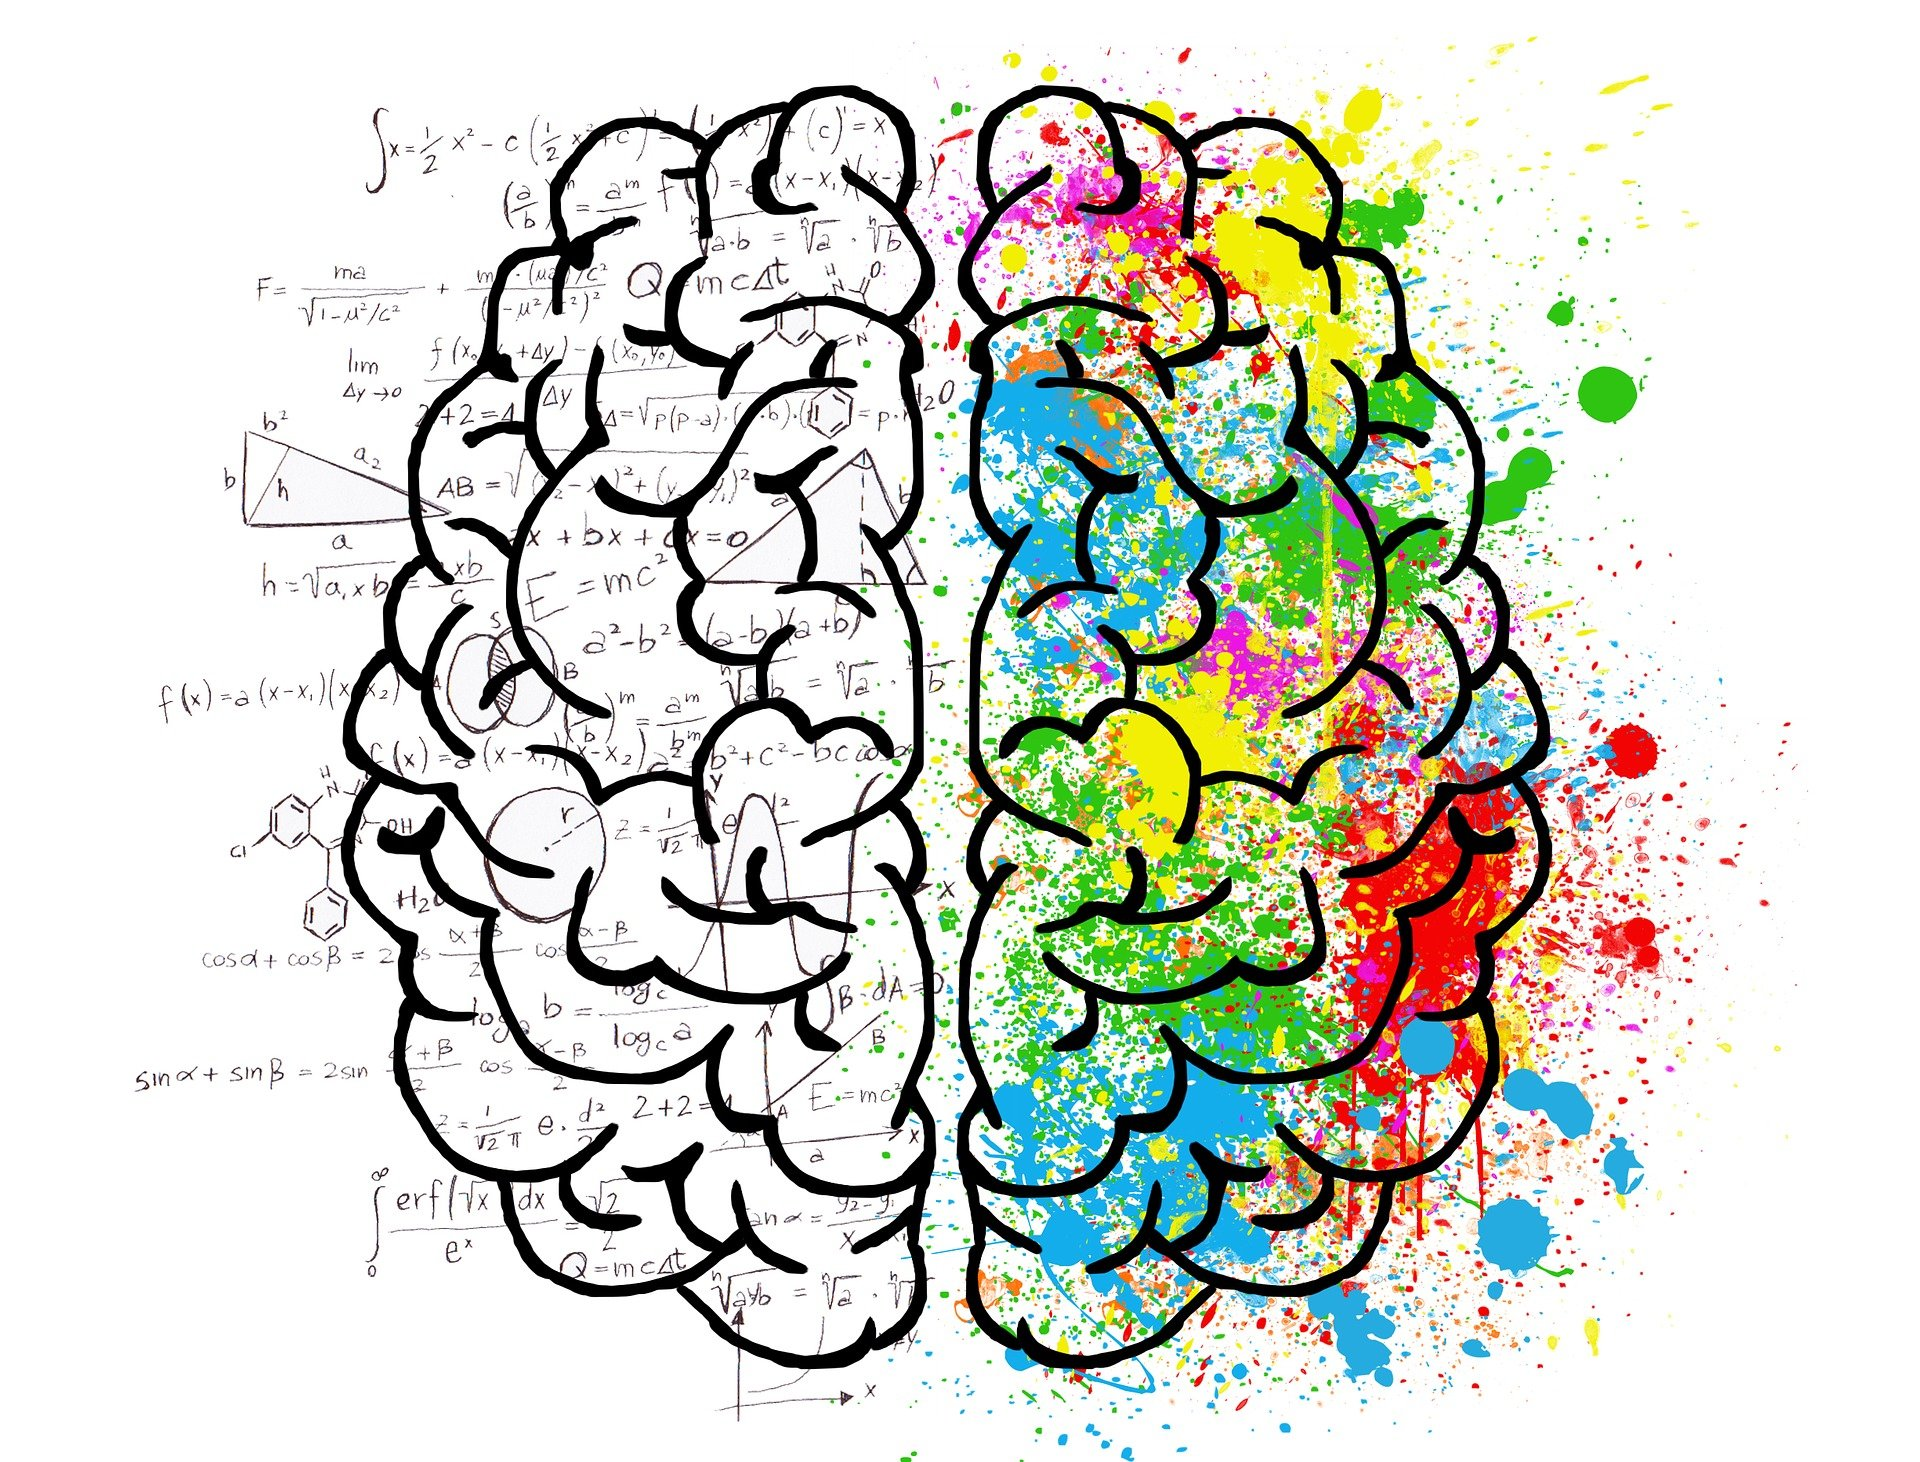 A drawing of the shape of a brain, illustrating bright, mixed colours of red, yellow, blue and green on one side